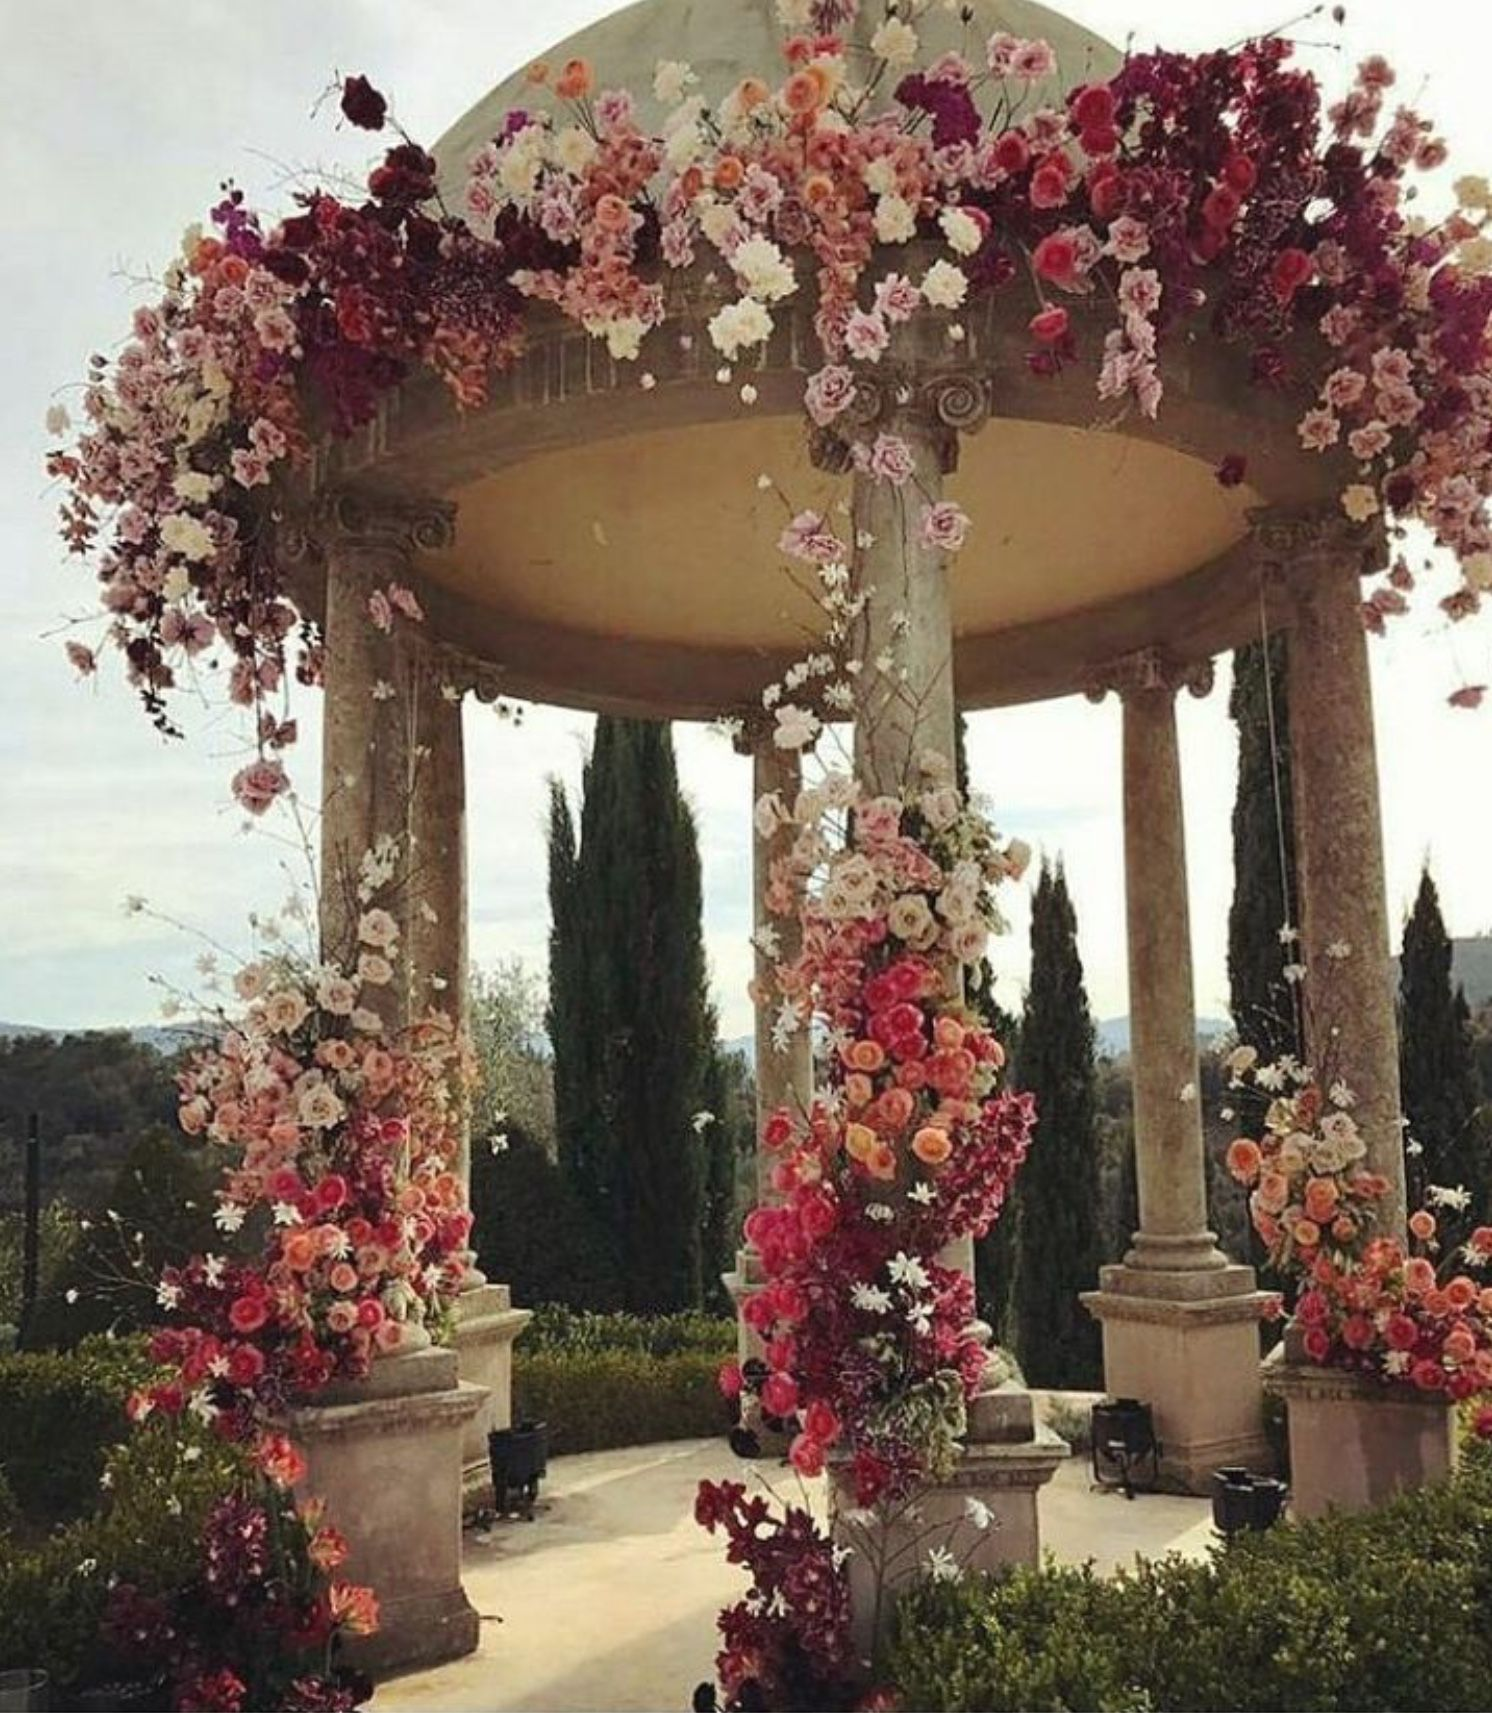 Wedding decorations stage backdrops october 2018 Pin by VILABLAVA on B O T A N I C A L S  Pinterest